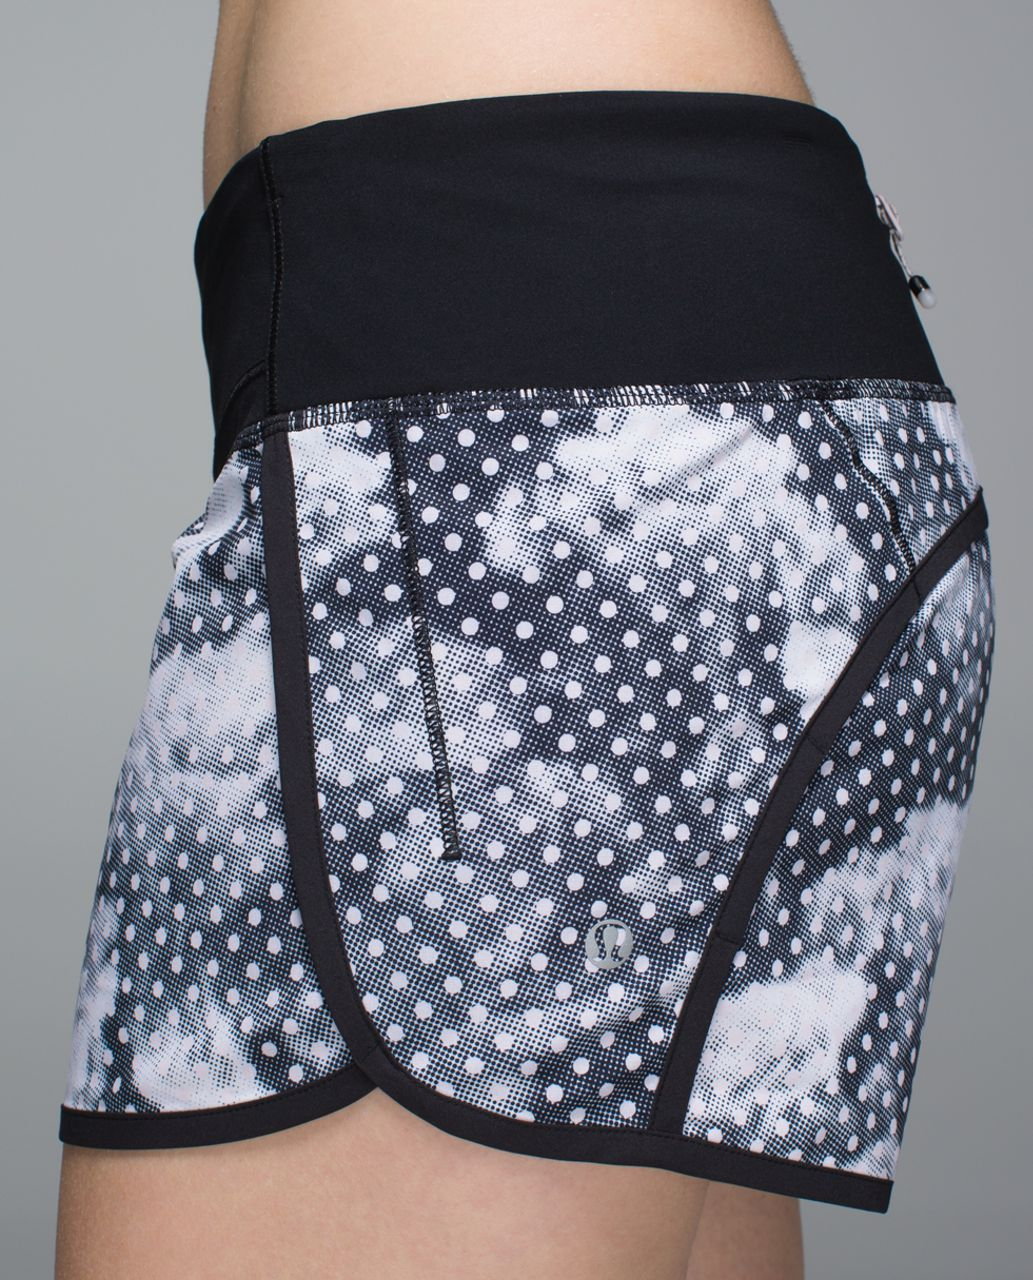 Lululemon Run Times Short *4-way Stretch - Dottie Dream Rose Neutral Blush Black / Black